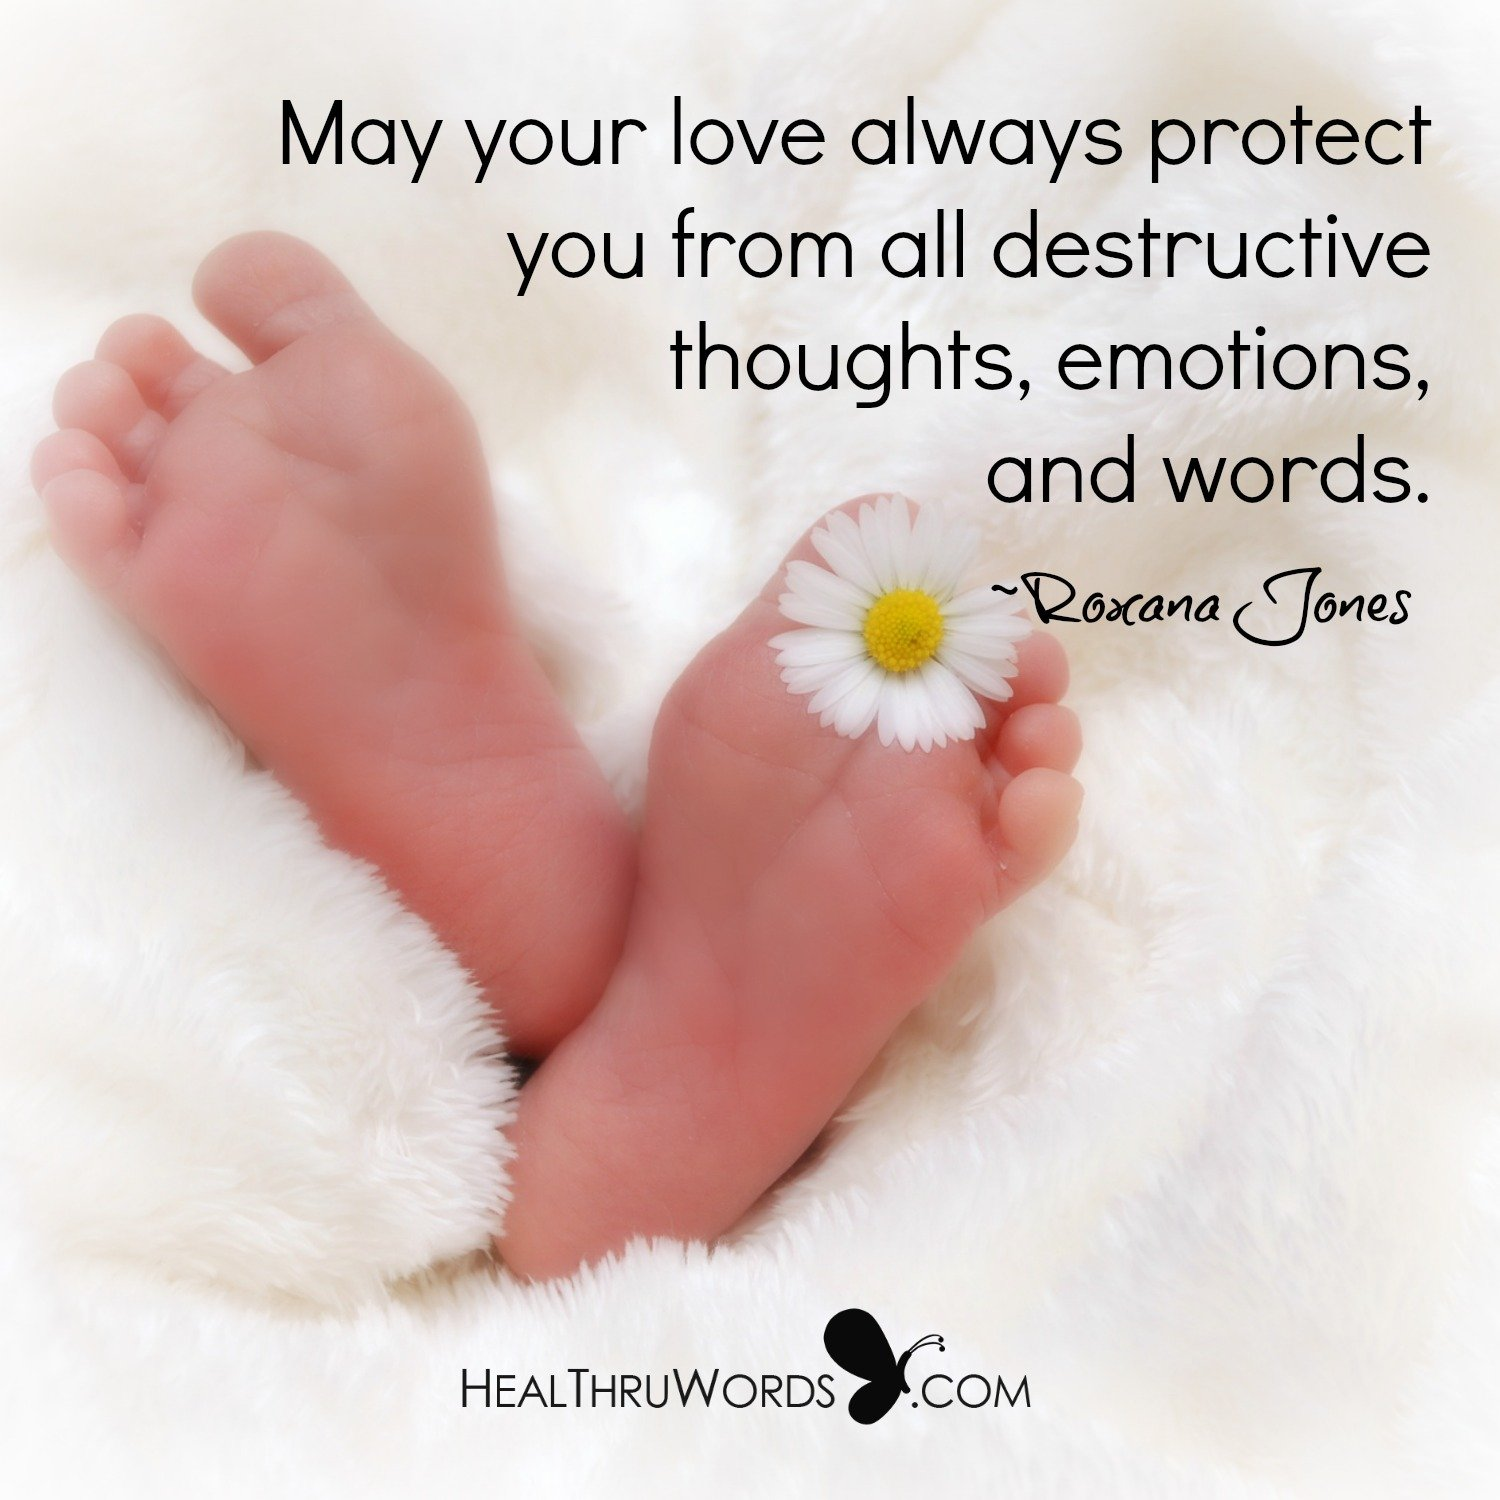 Inspirational Image: The Protection of Love